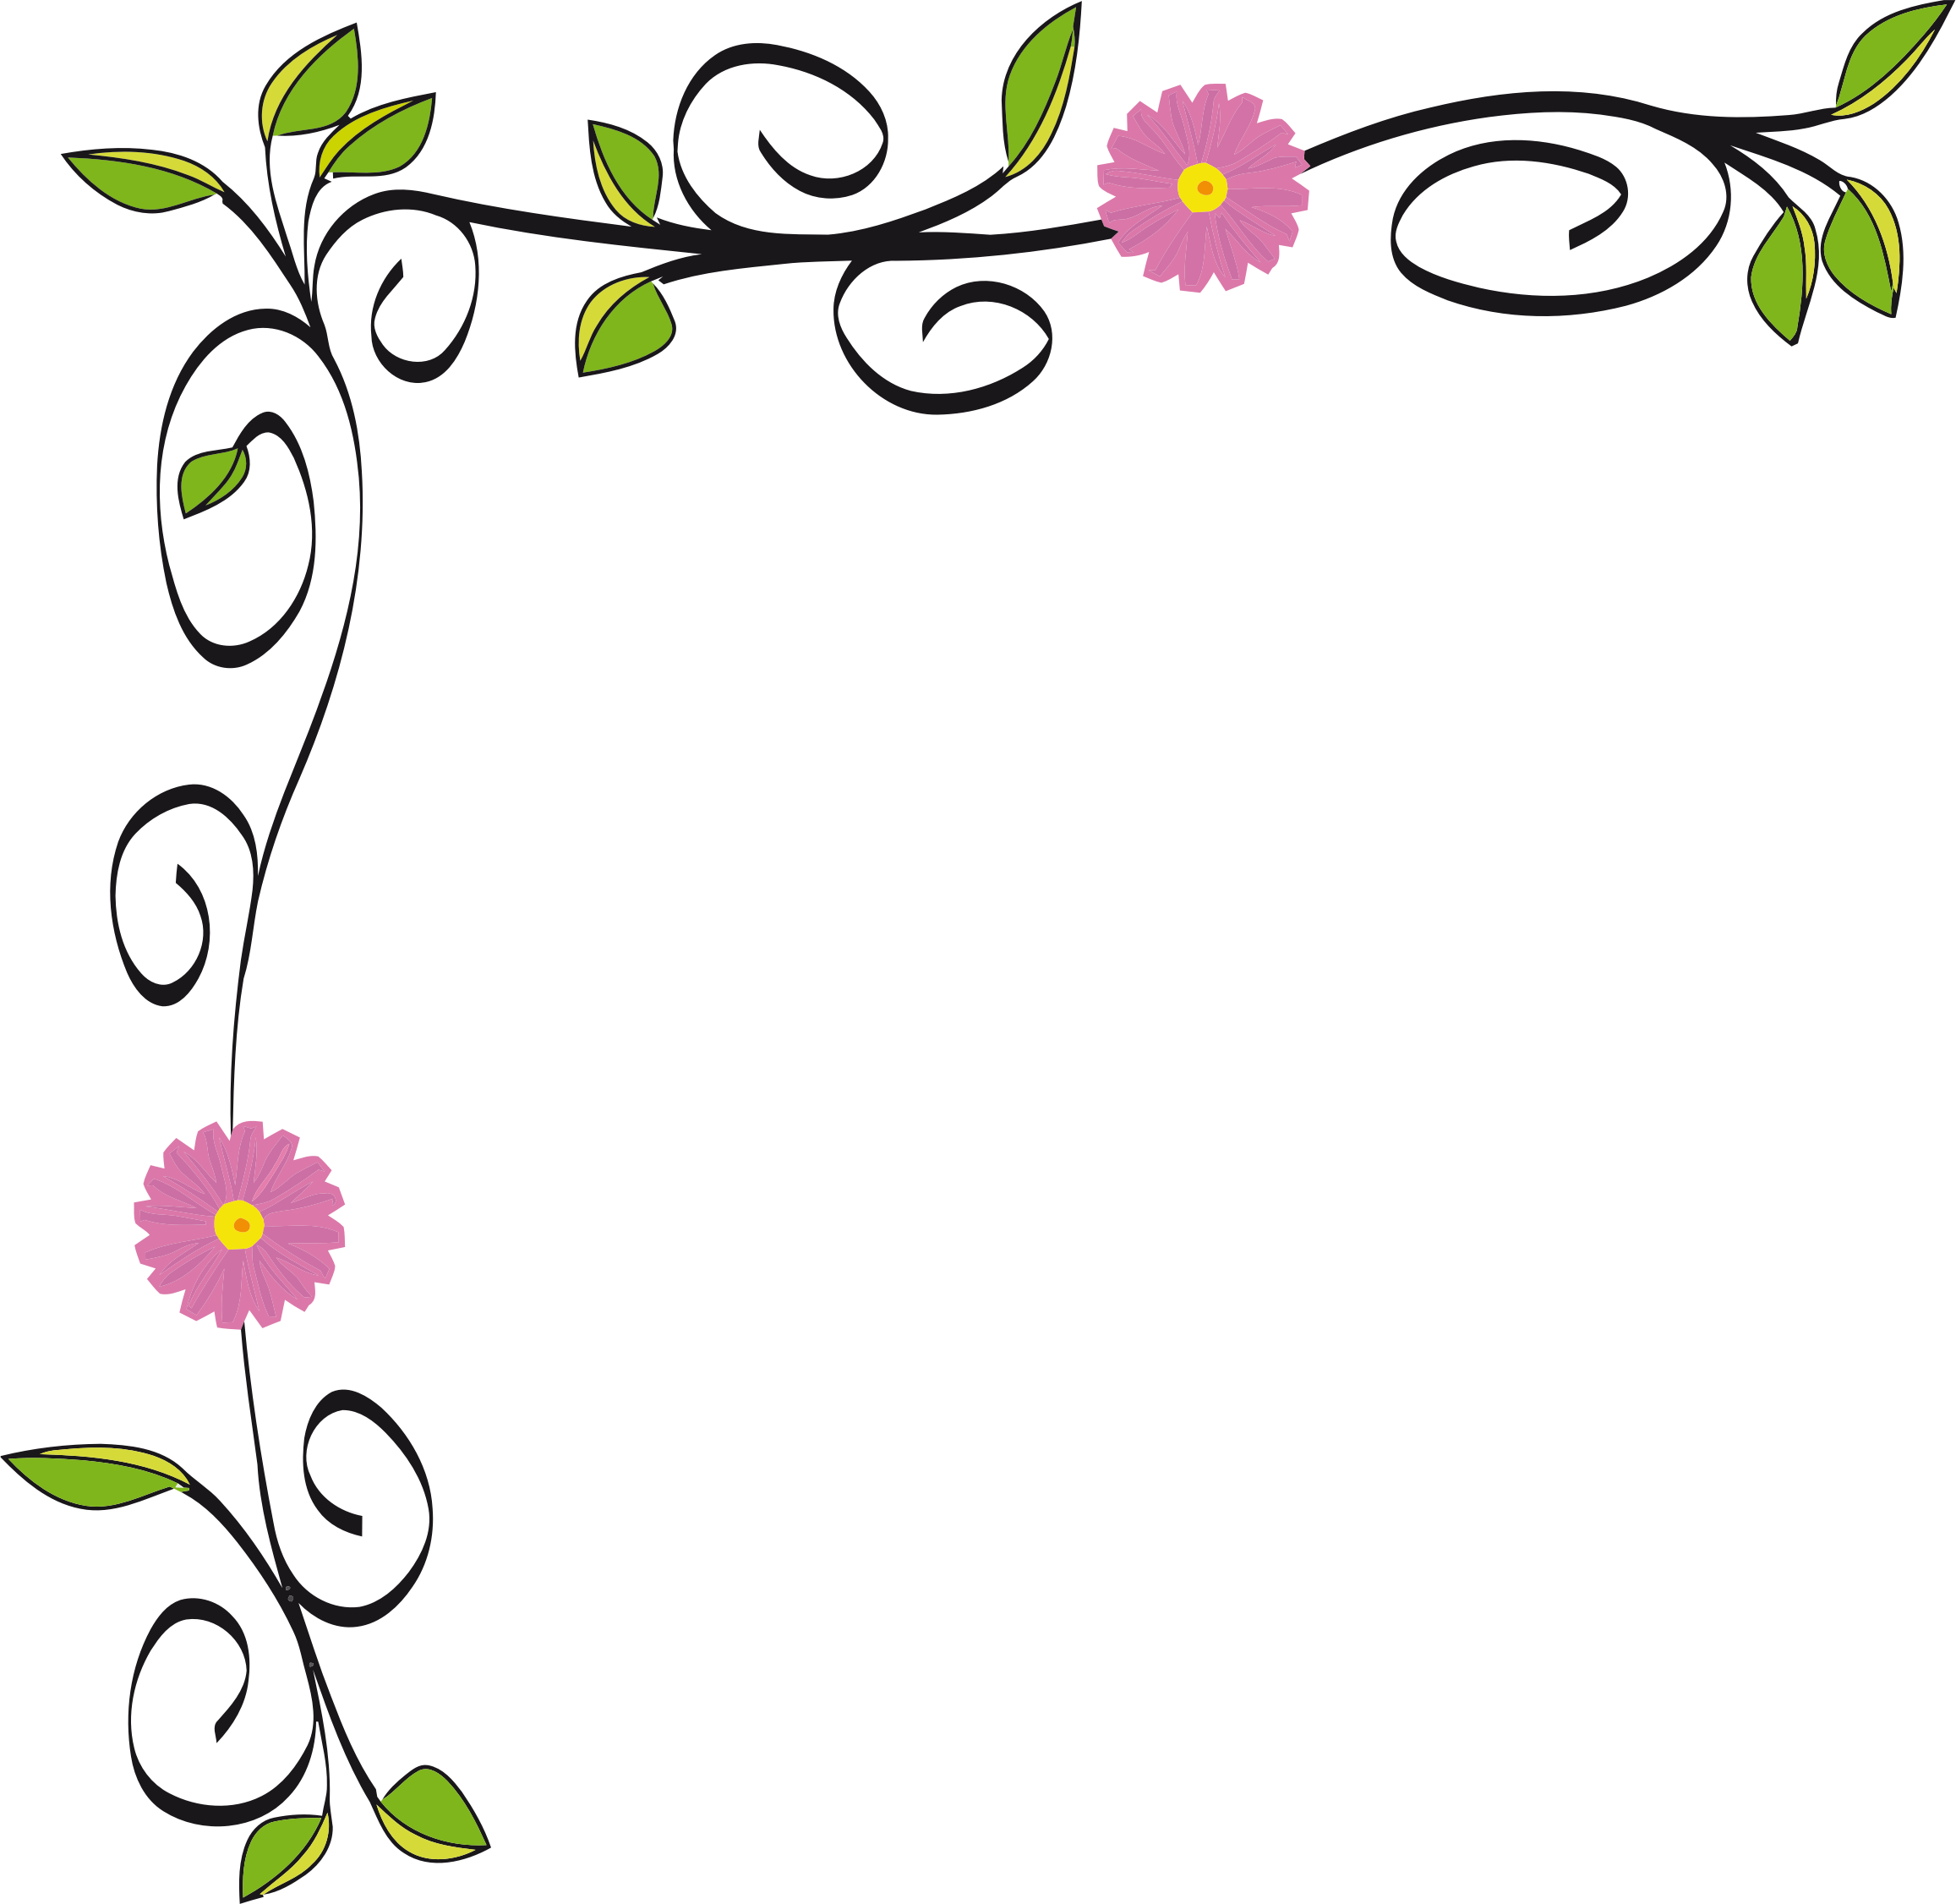 Floral Border Vectorized on Green Circle Frame